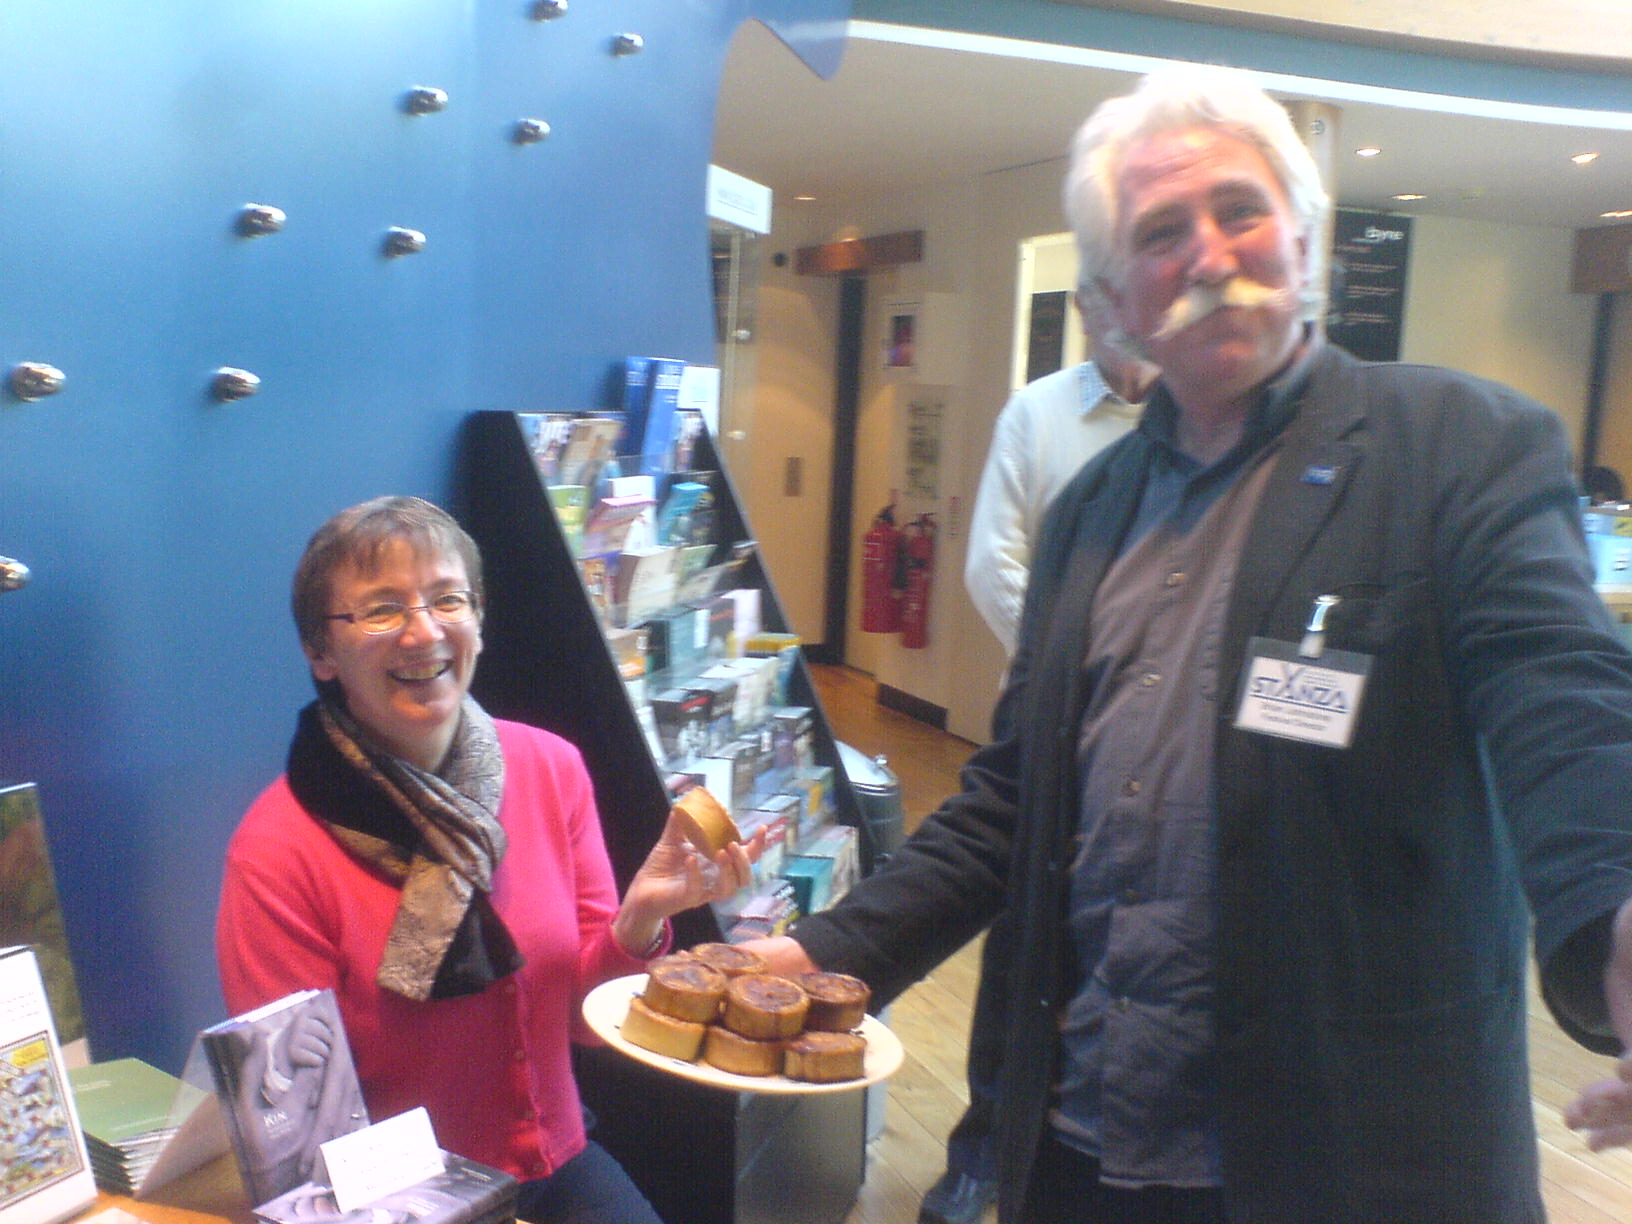 Robyn and Brian do three cheers for Stuart of Buckhaven's pies...